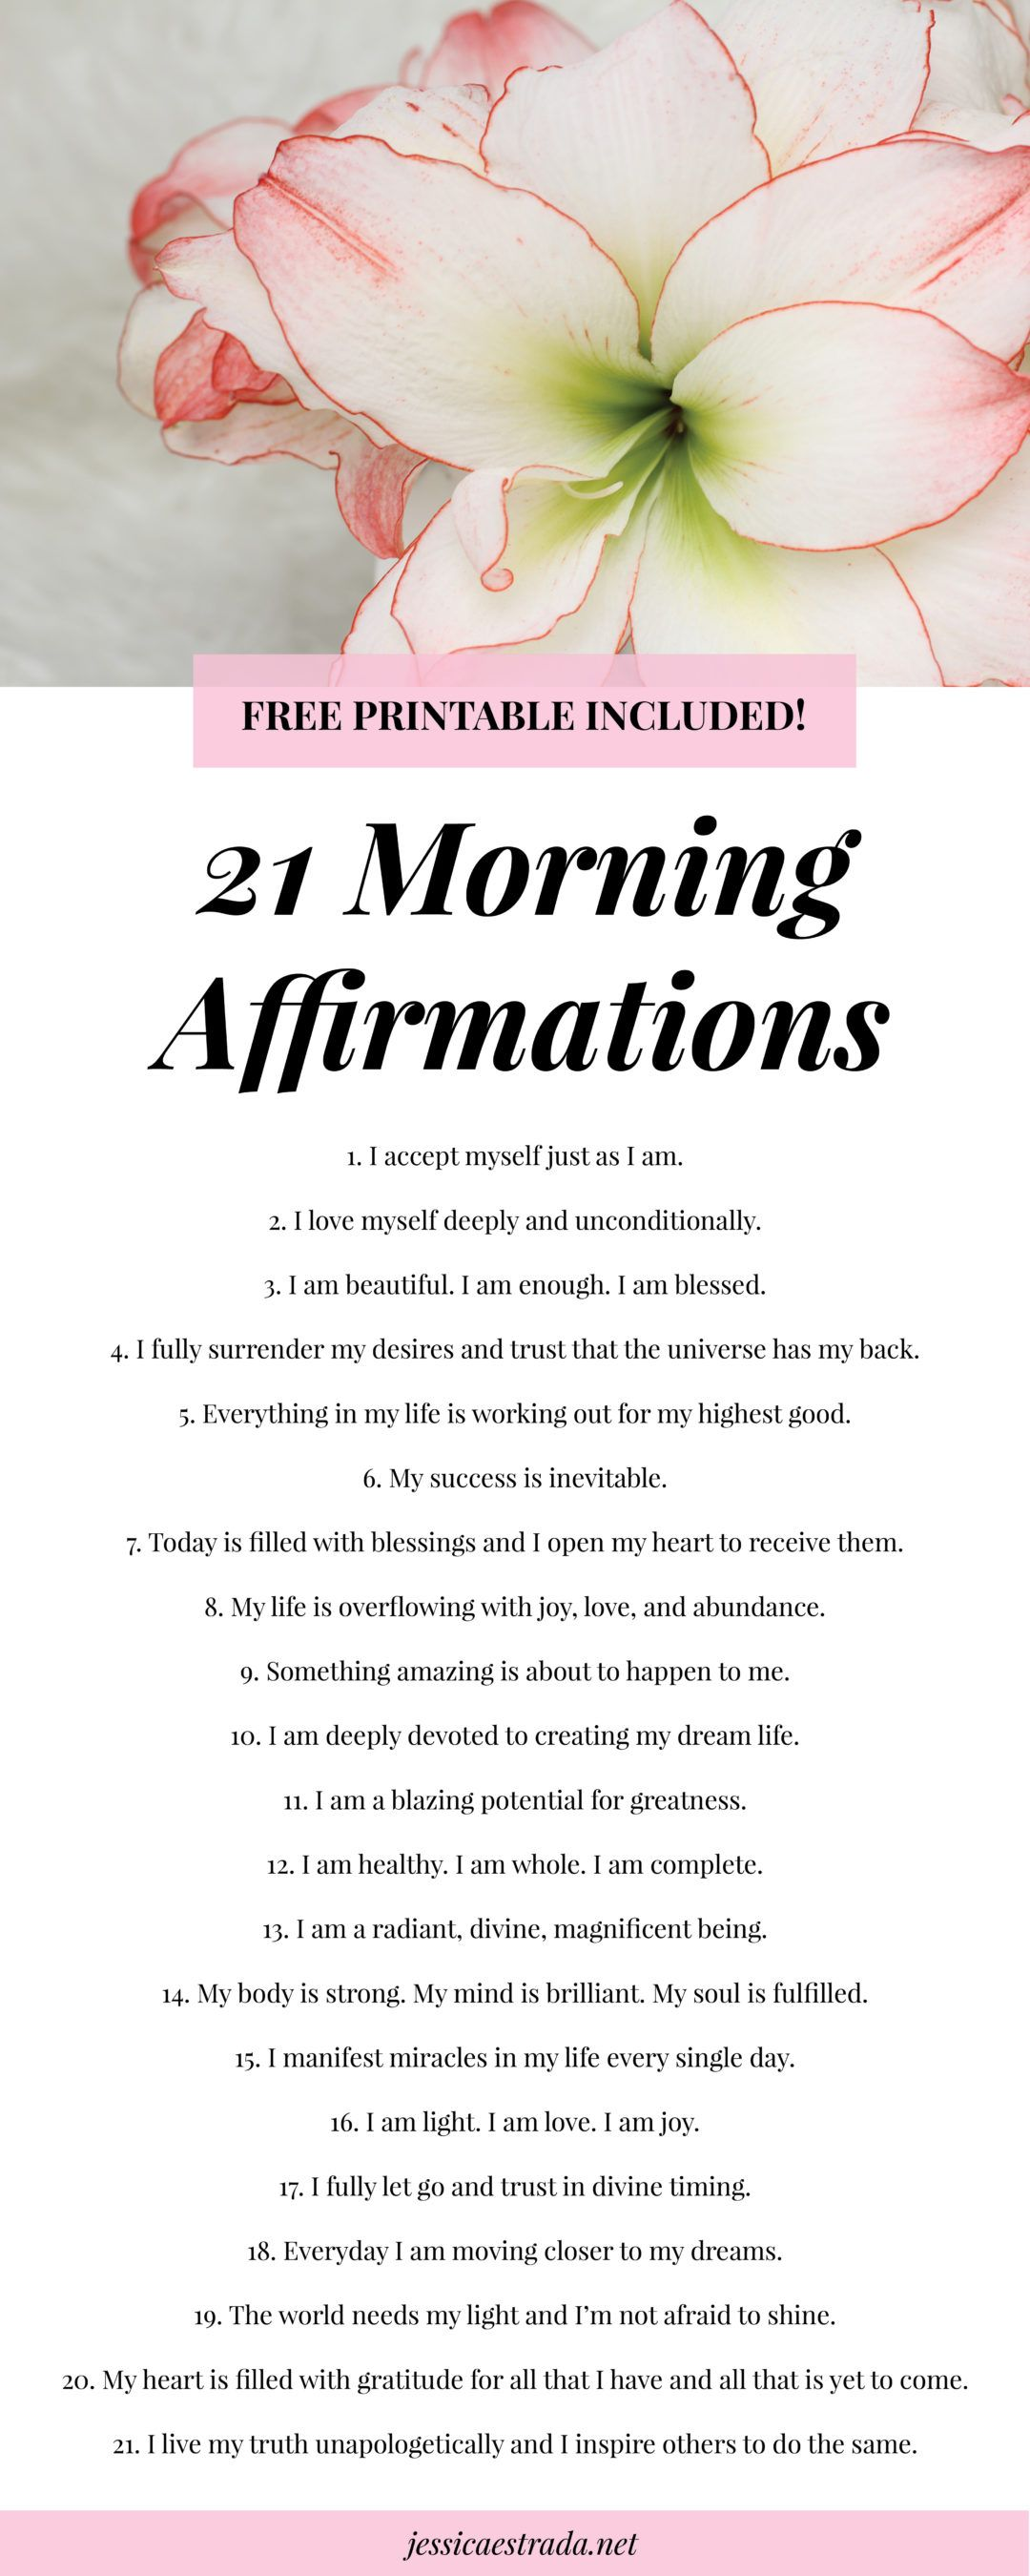 5 Morning Rituals That Changed My Life and Career — Jessica Estrada